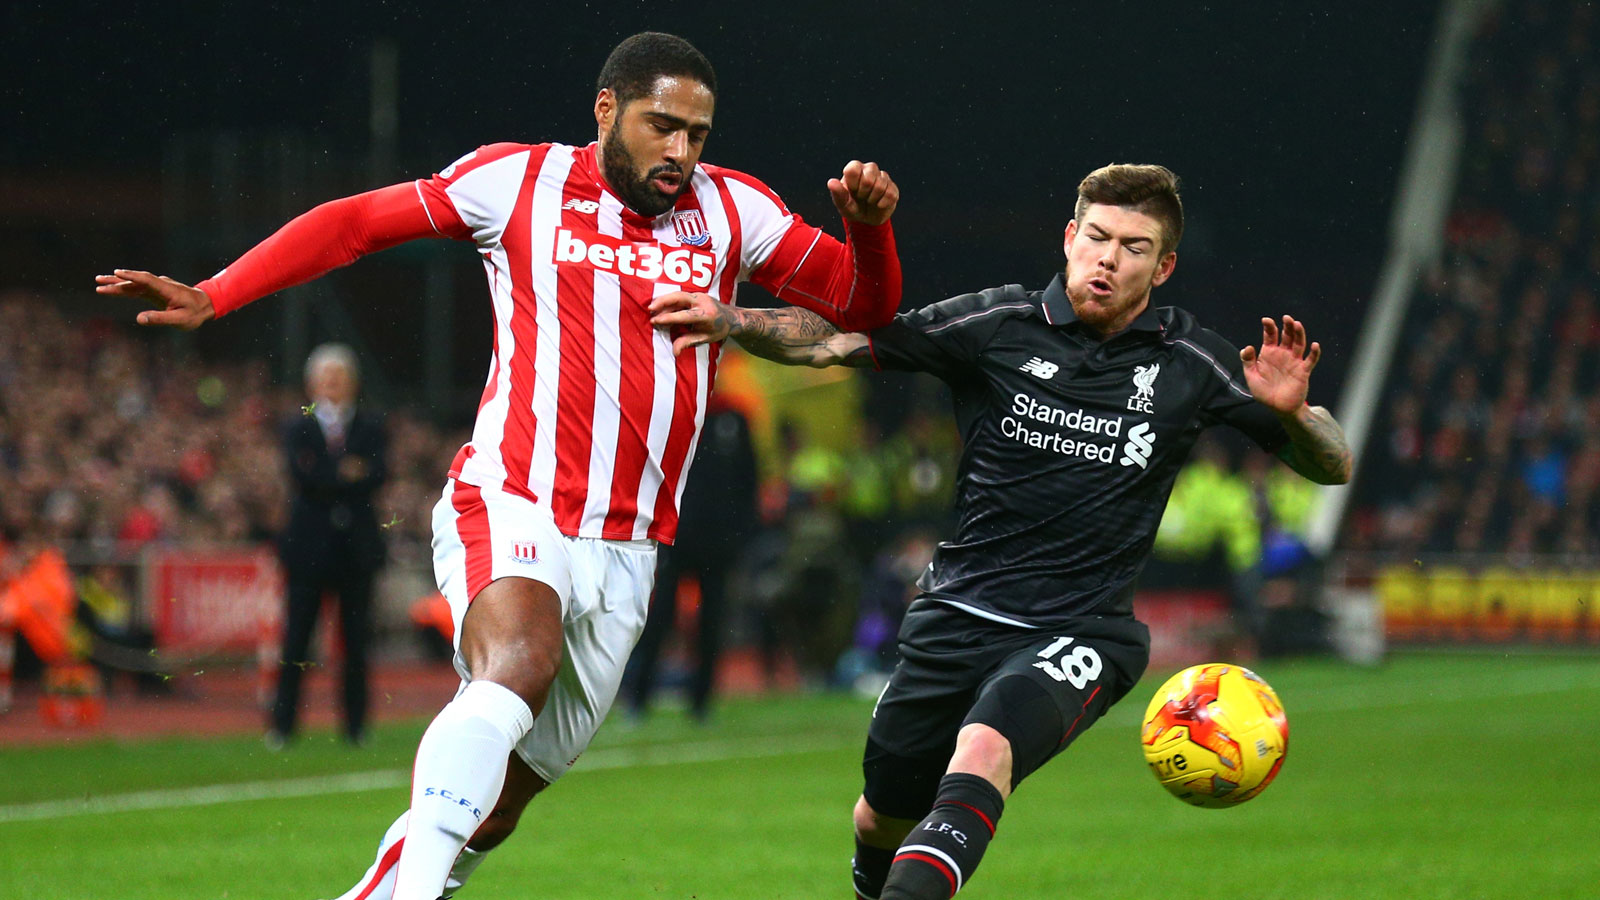 Stoke can still trouble Liverpool, says Johnson